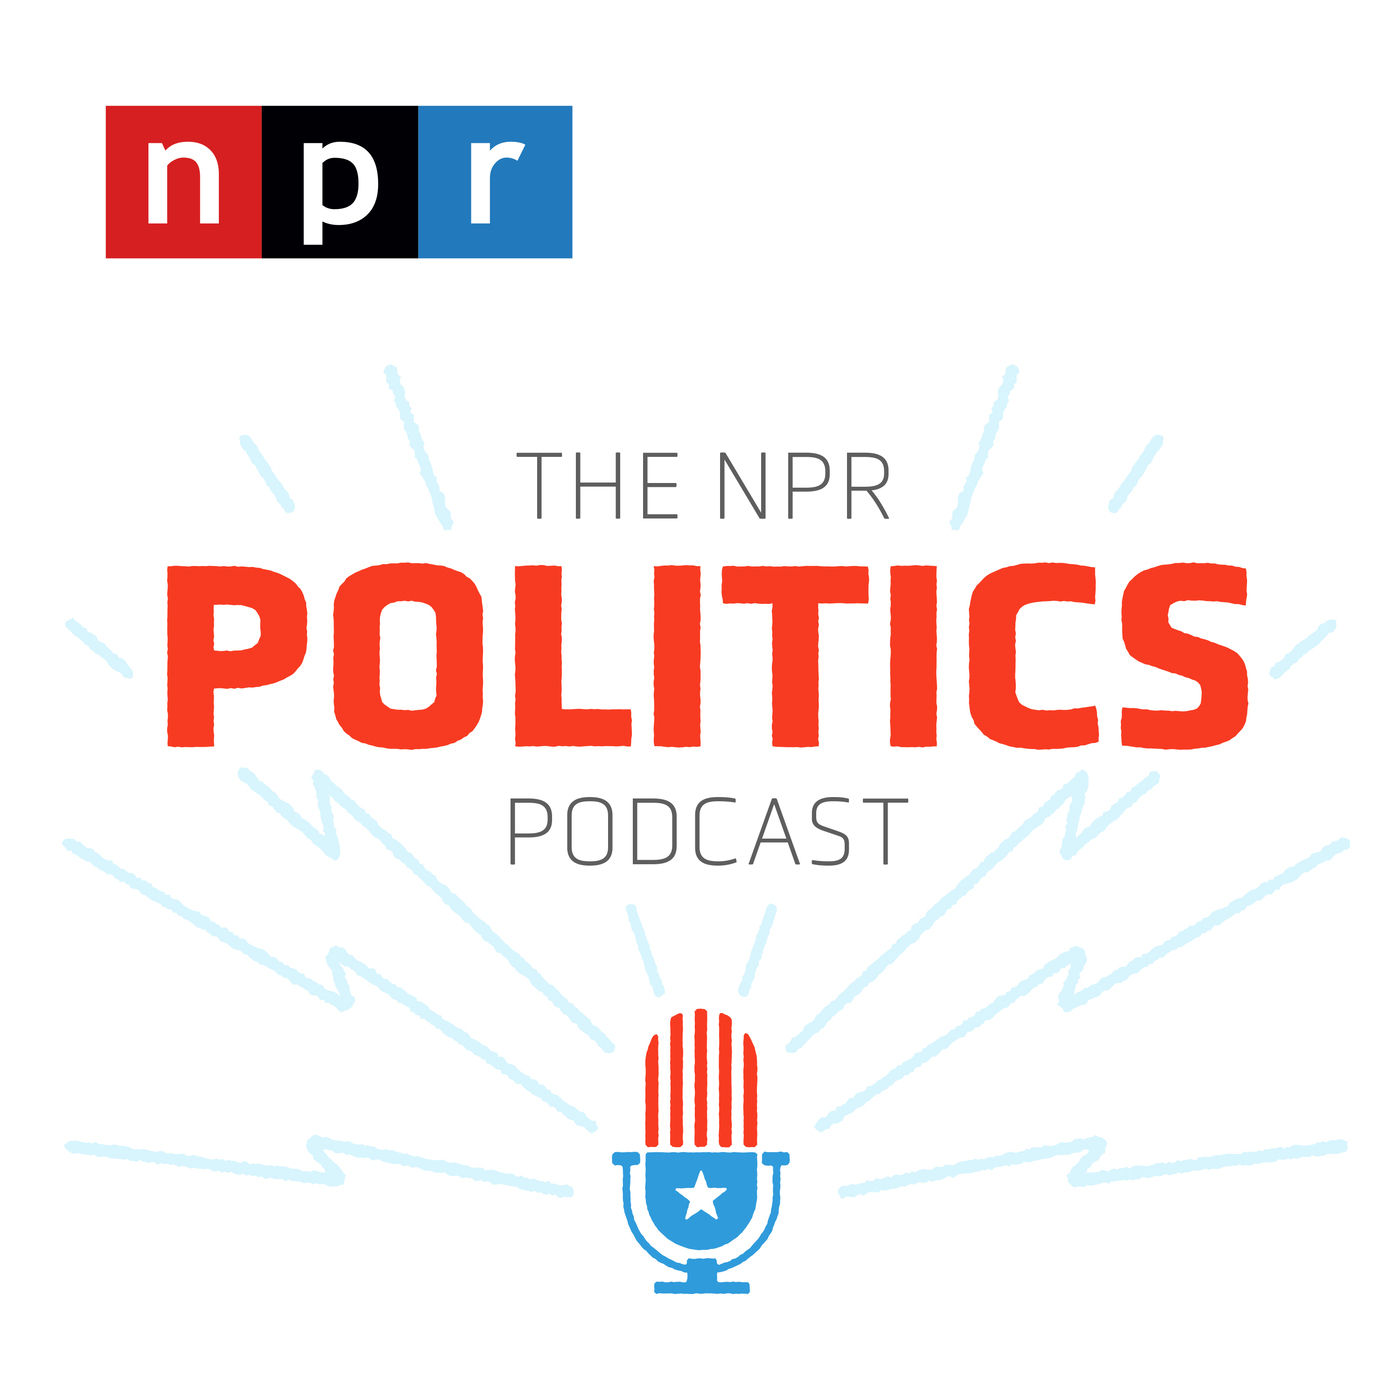 The NPR Politics Podcast Logo